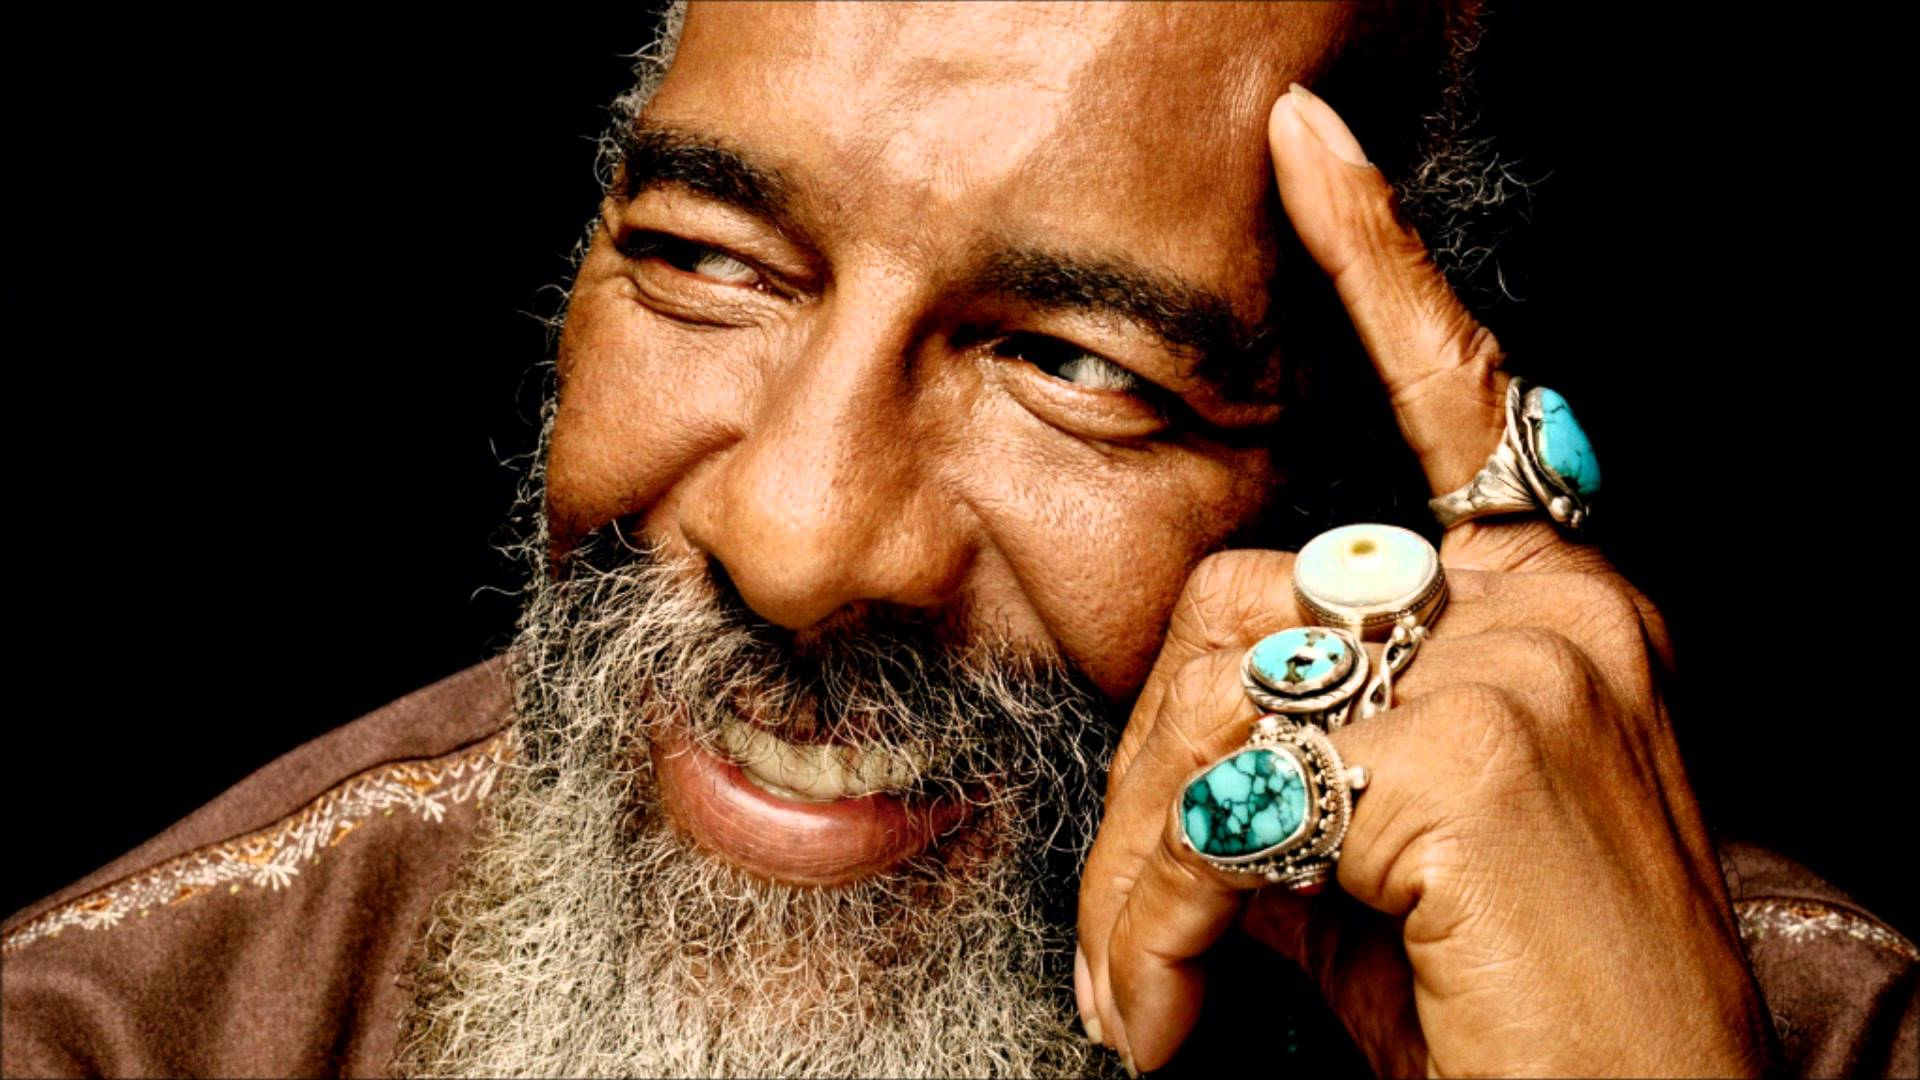 Groove Armada Feat. Richie Havens - Hands Of Time